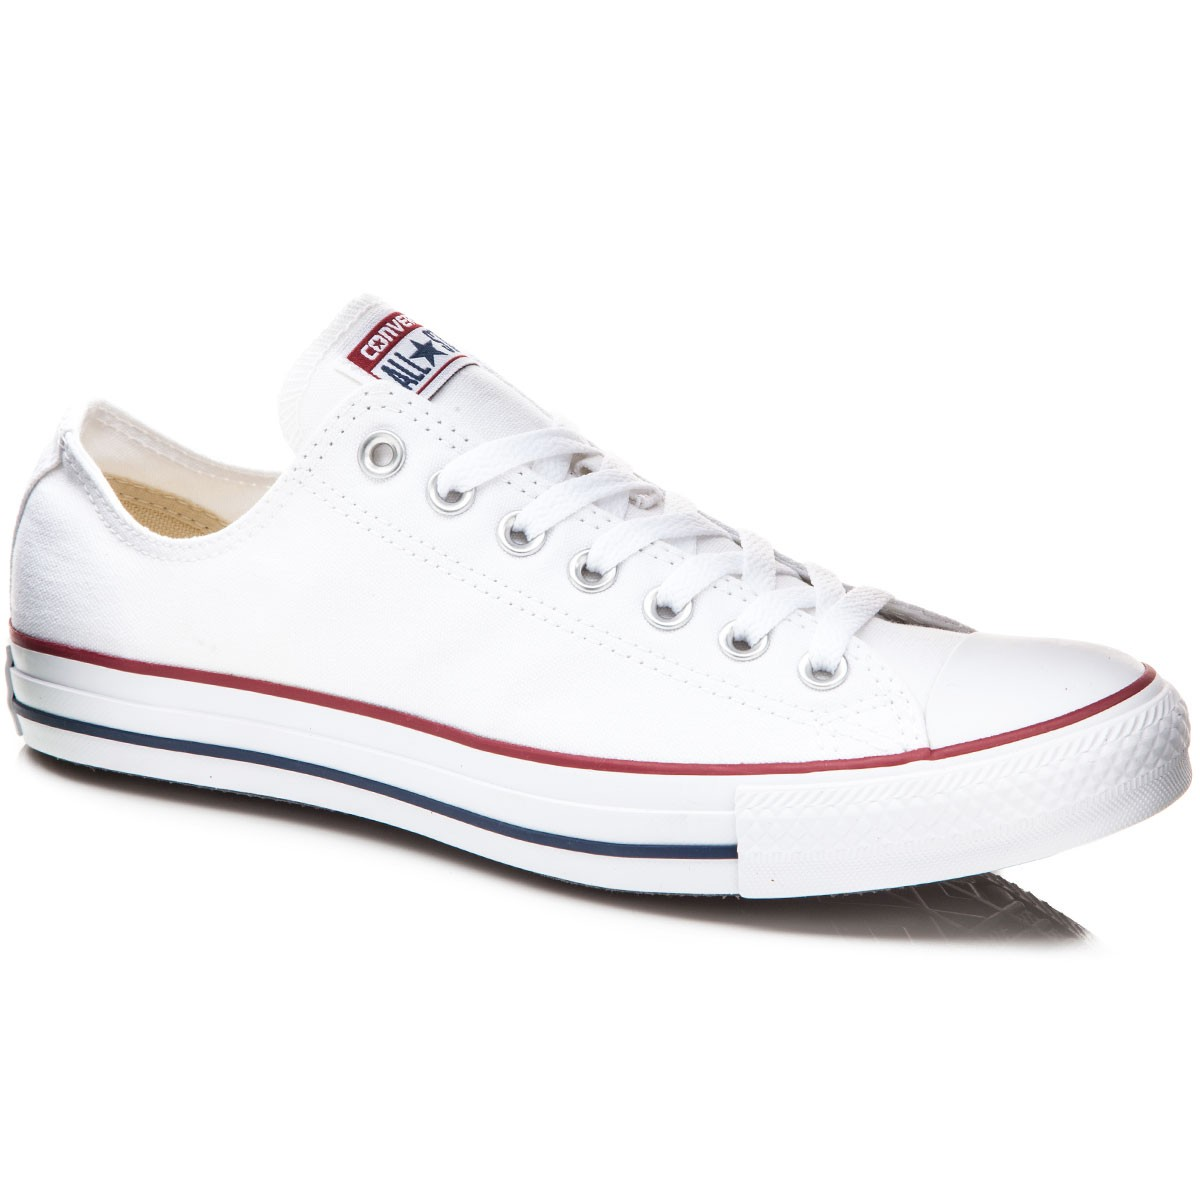 Buy converse all star 2 review > 59% off!